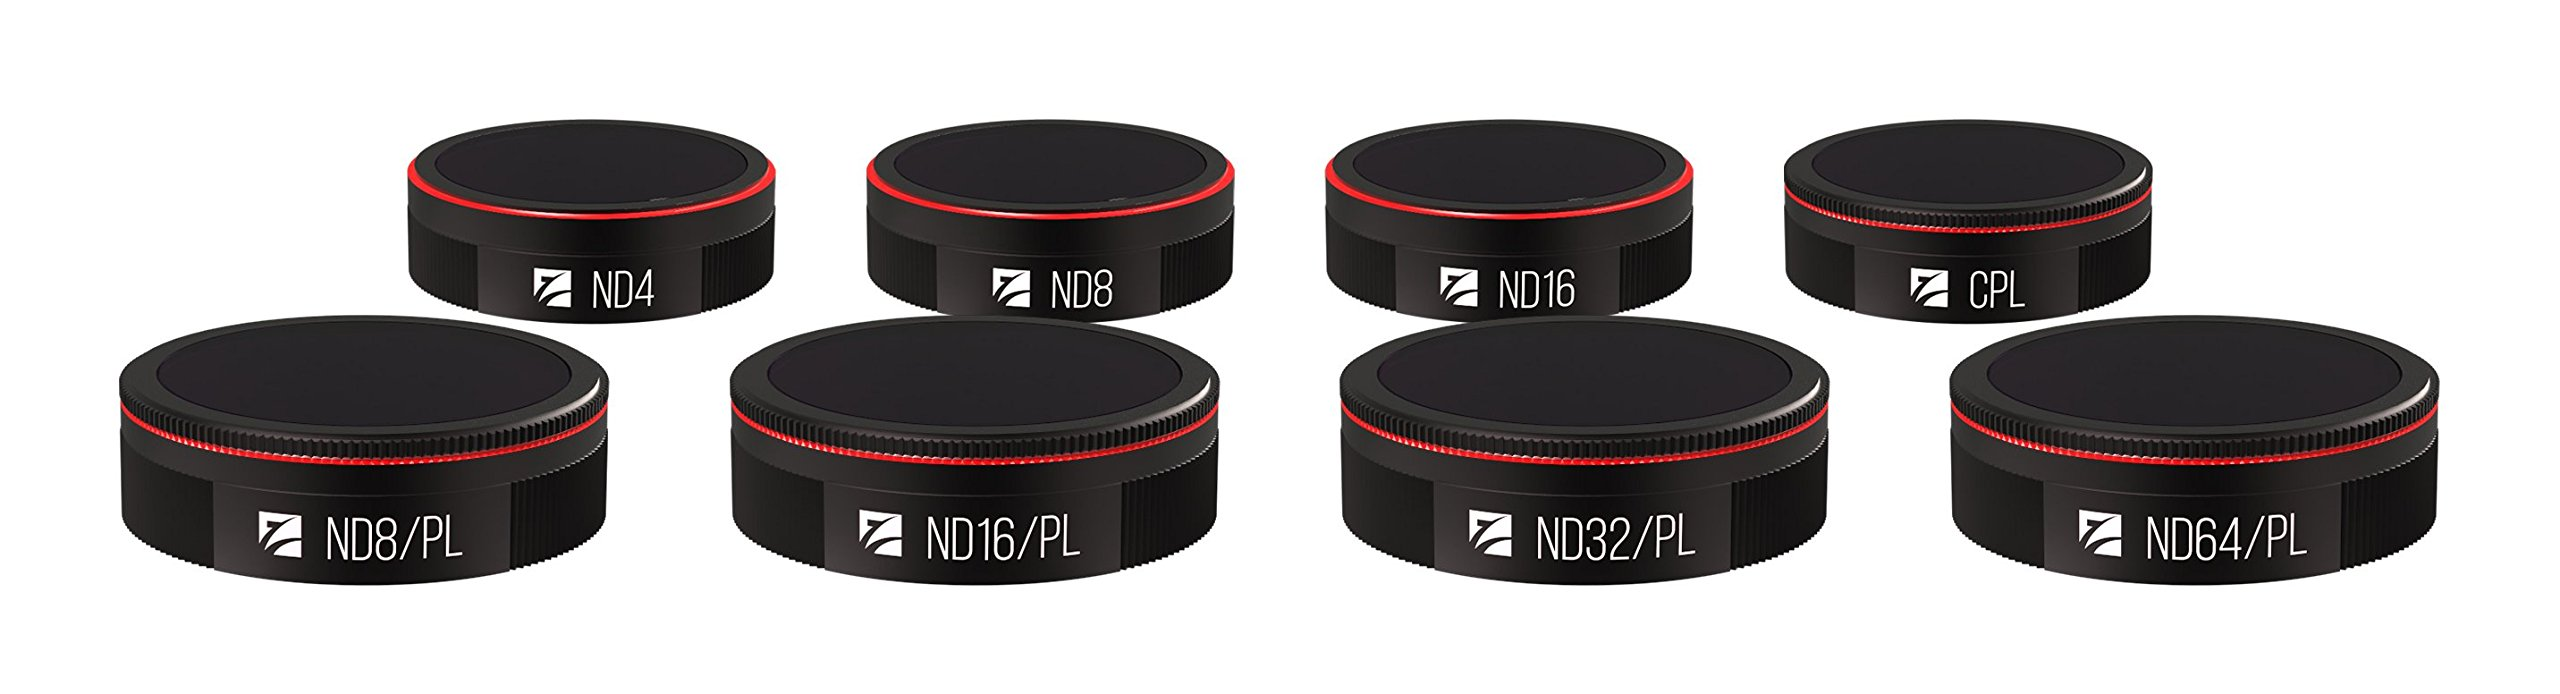 Freewell All Day 8 Pack ND4, ND8, ND16, CPL, ND8/PL, ND16/PL, ND32/PL, ND64/PL Filters Compatible with Autel Evo by Freewell